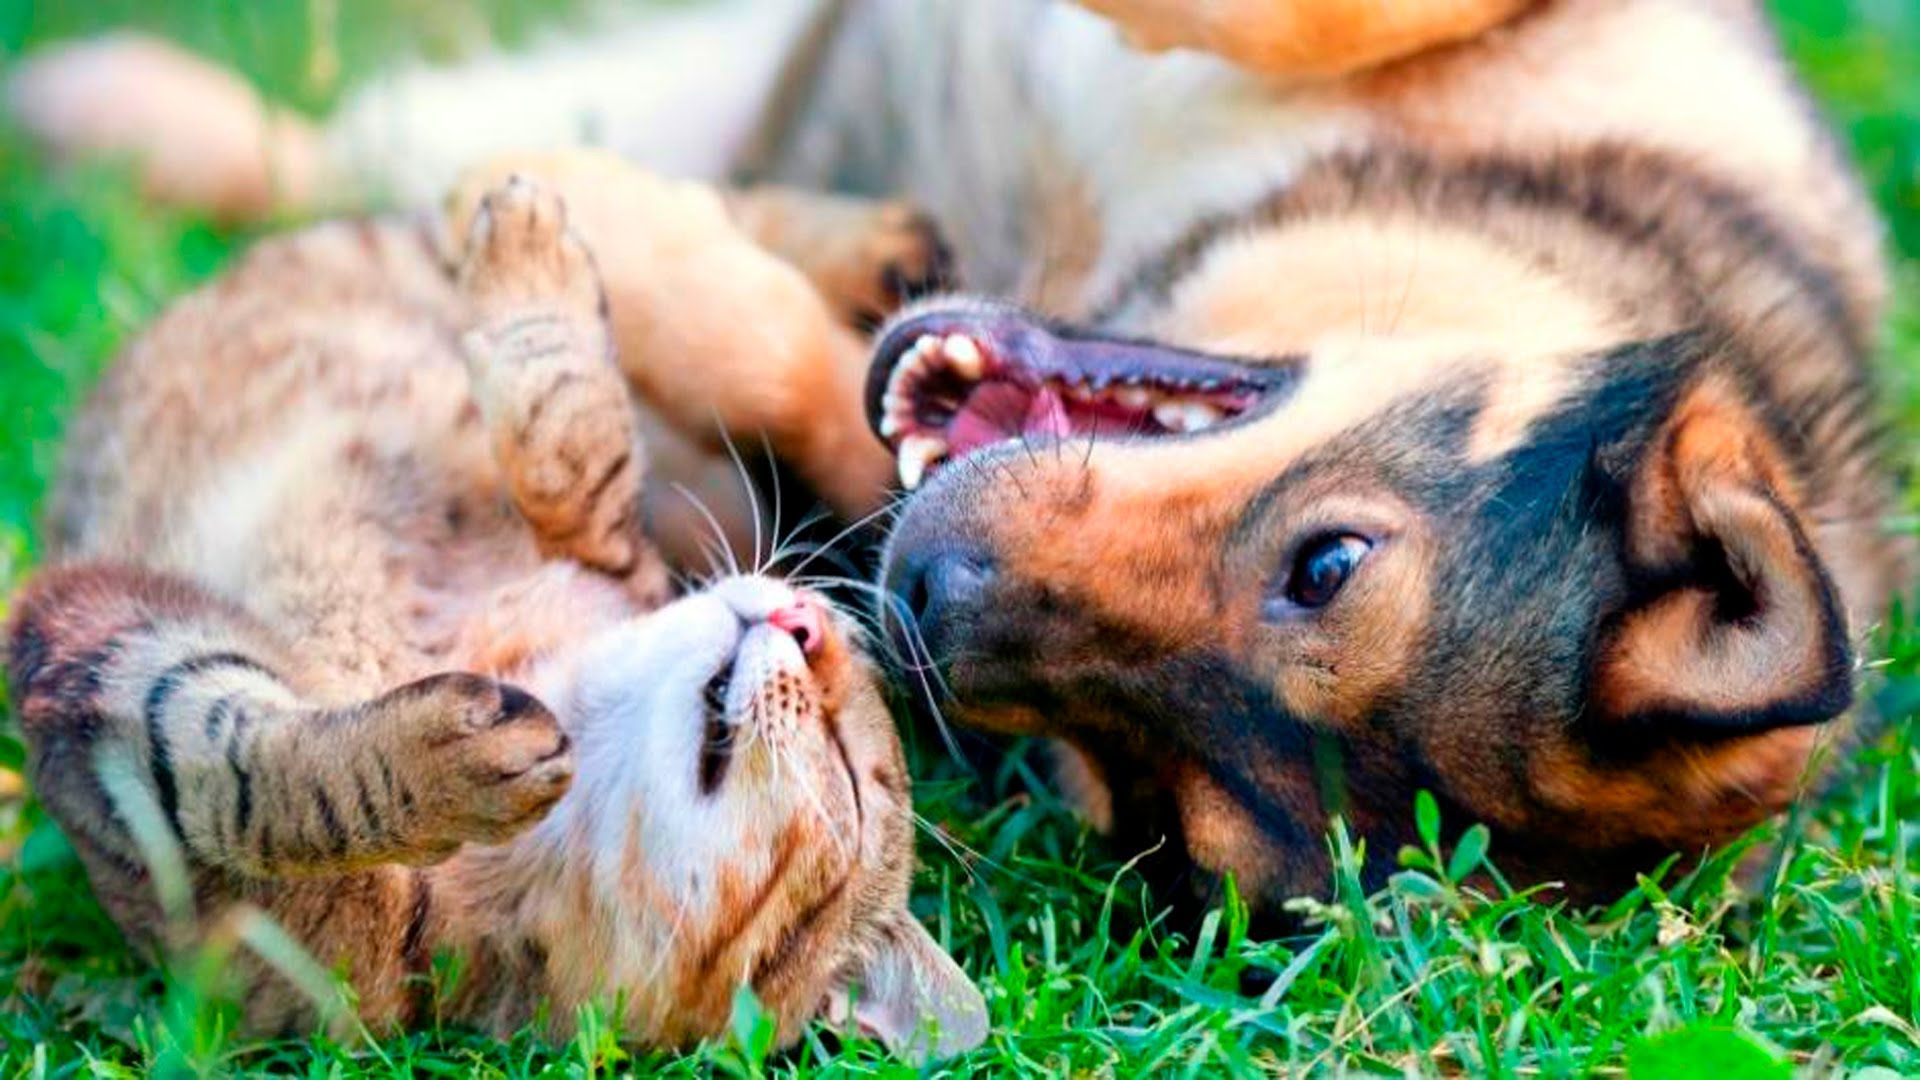 Dogs And Cats Playing With Each Other R Aww Animals Oils For Dogs Dog Cat